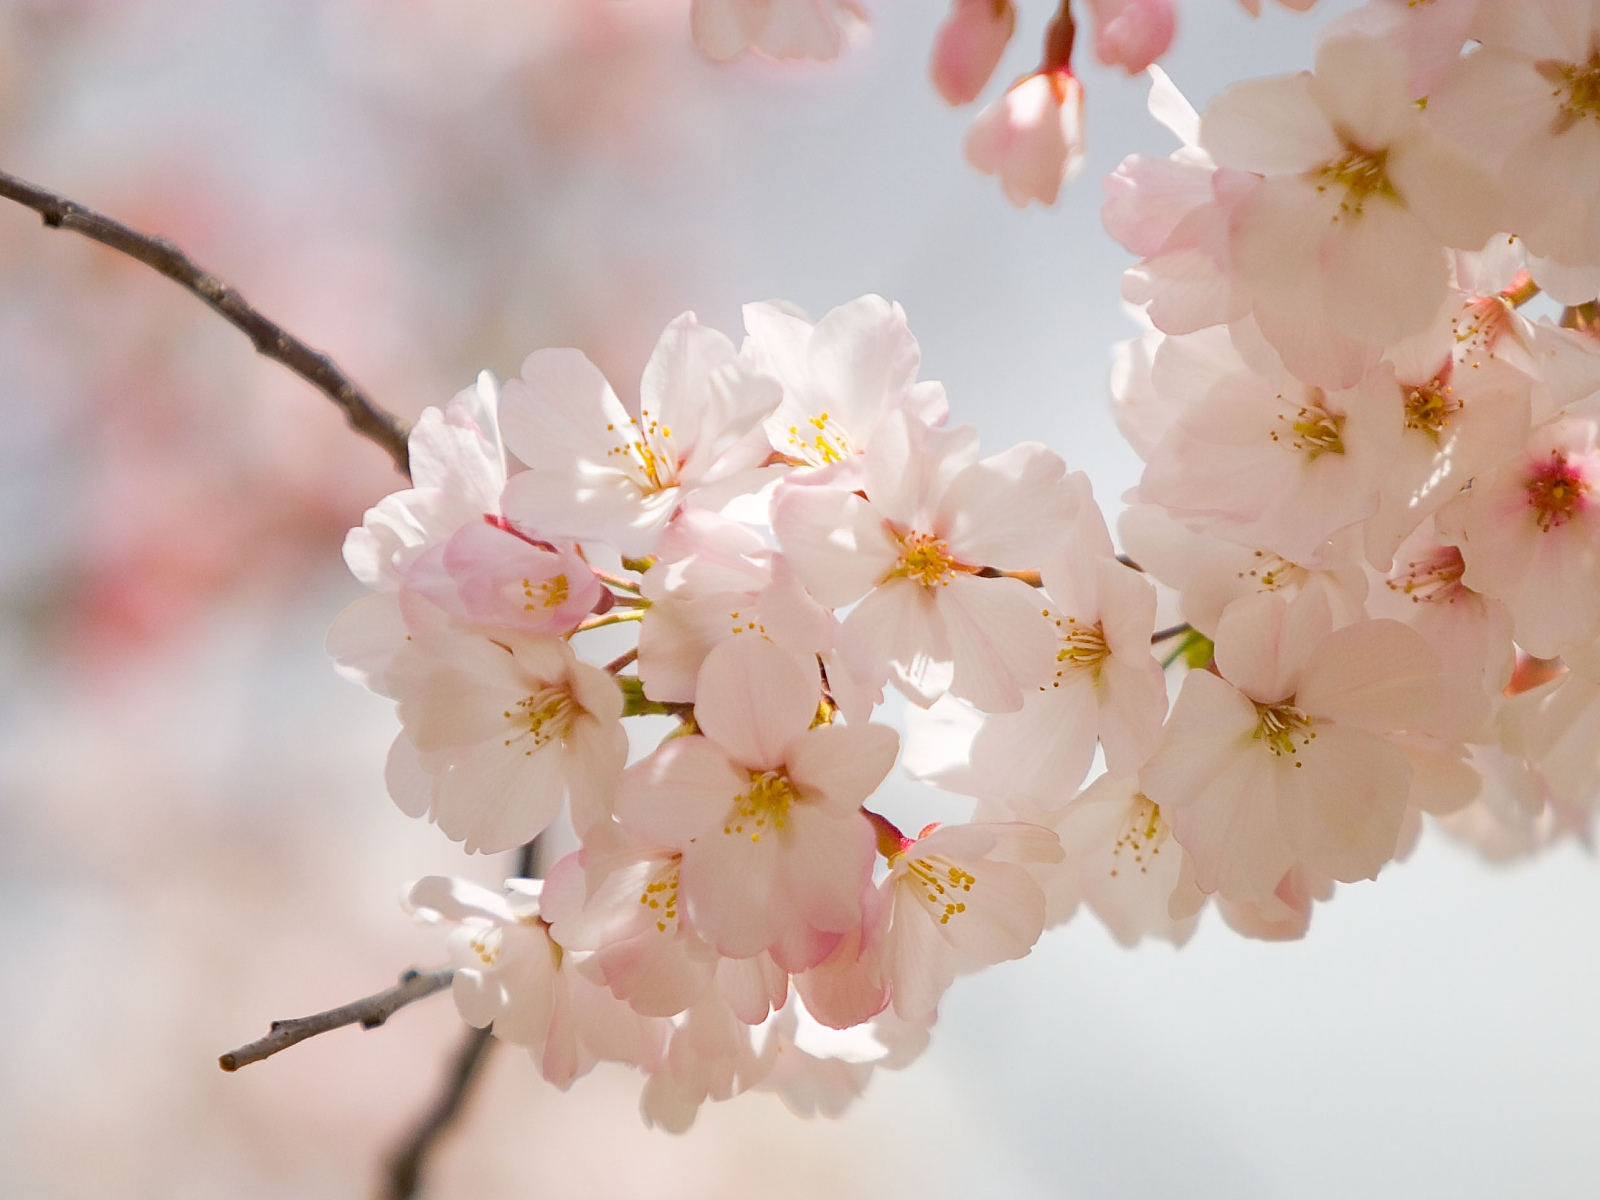 102 Spring HD Wallpapers  Background Images  Wallpaper Abyss